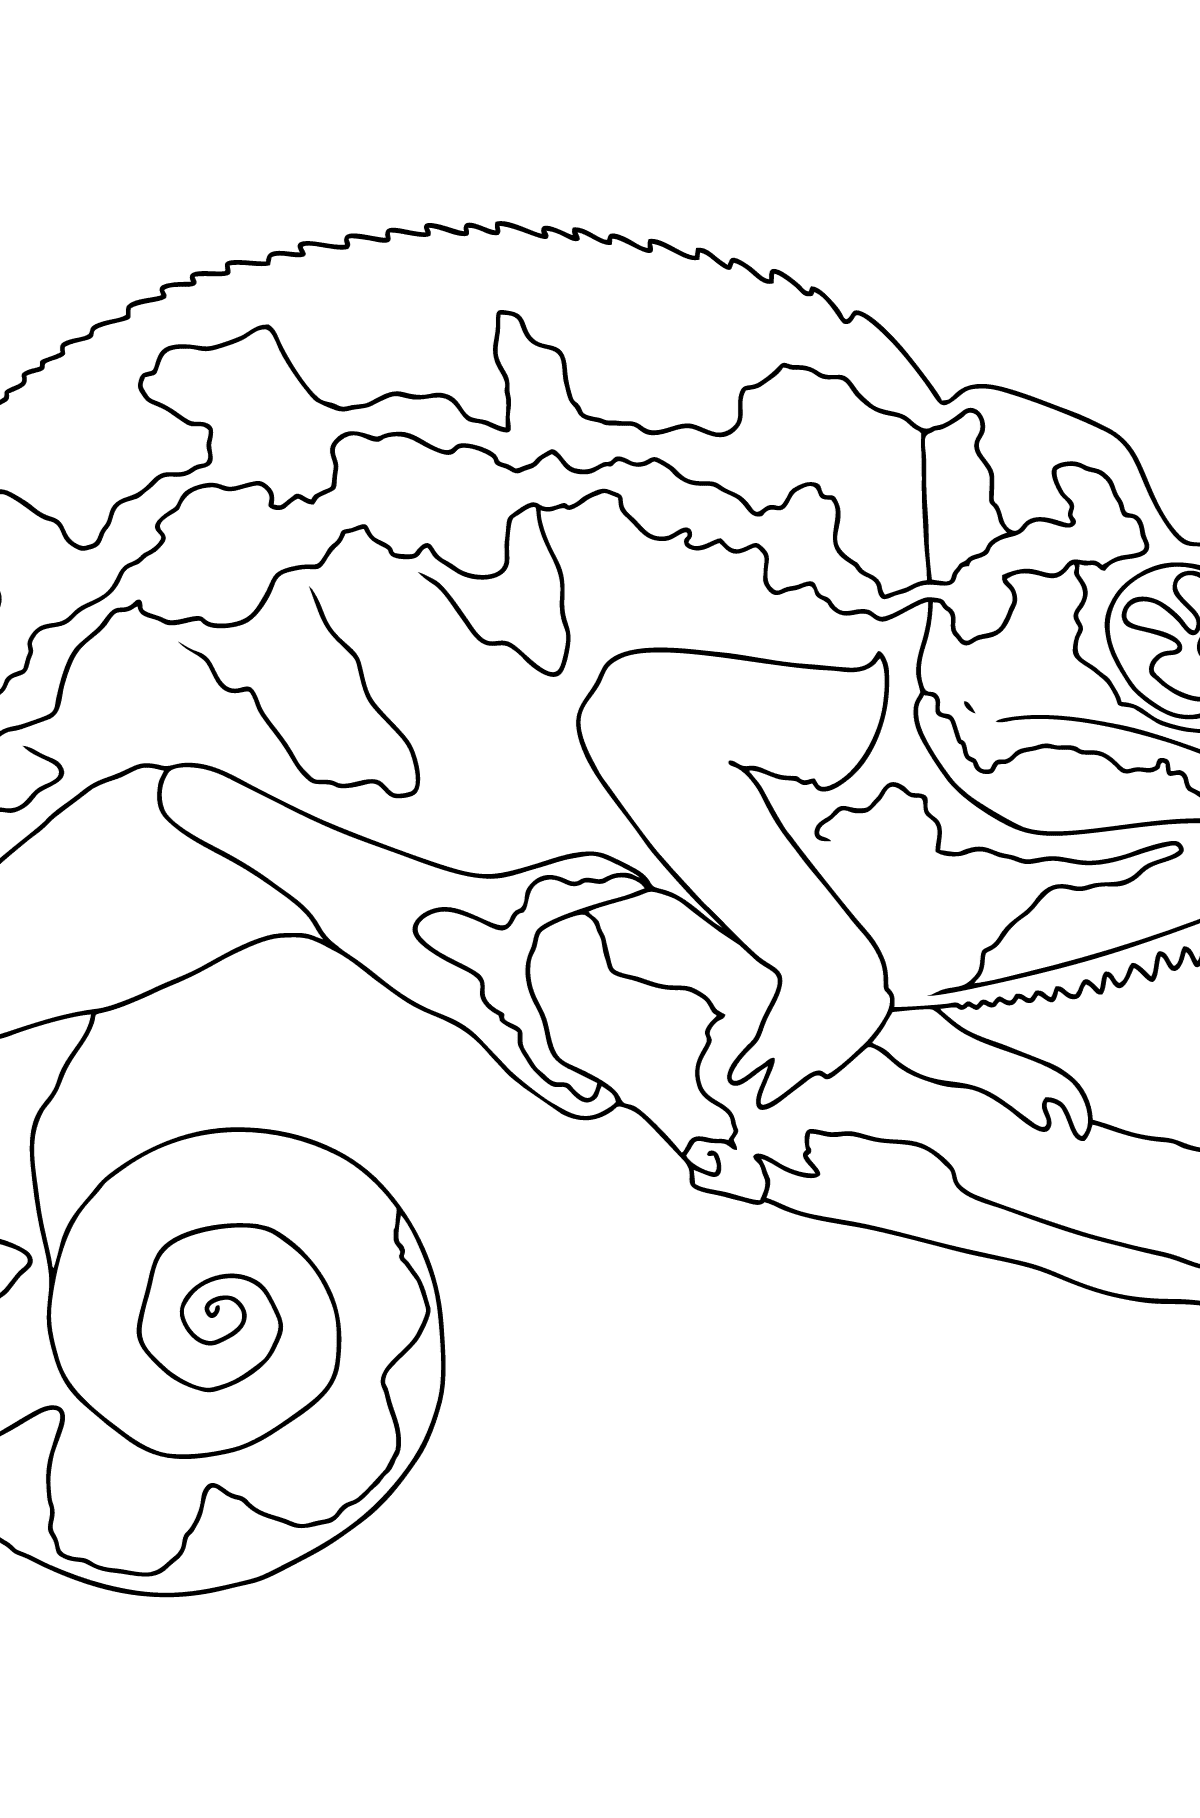 Coloring Page - A Chameleon on a Branch - Coloring Pages for Kids